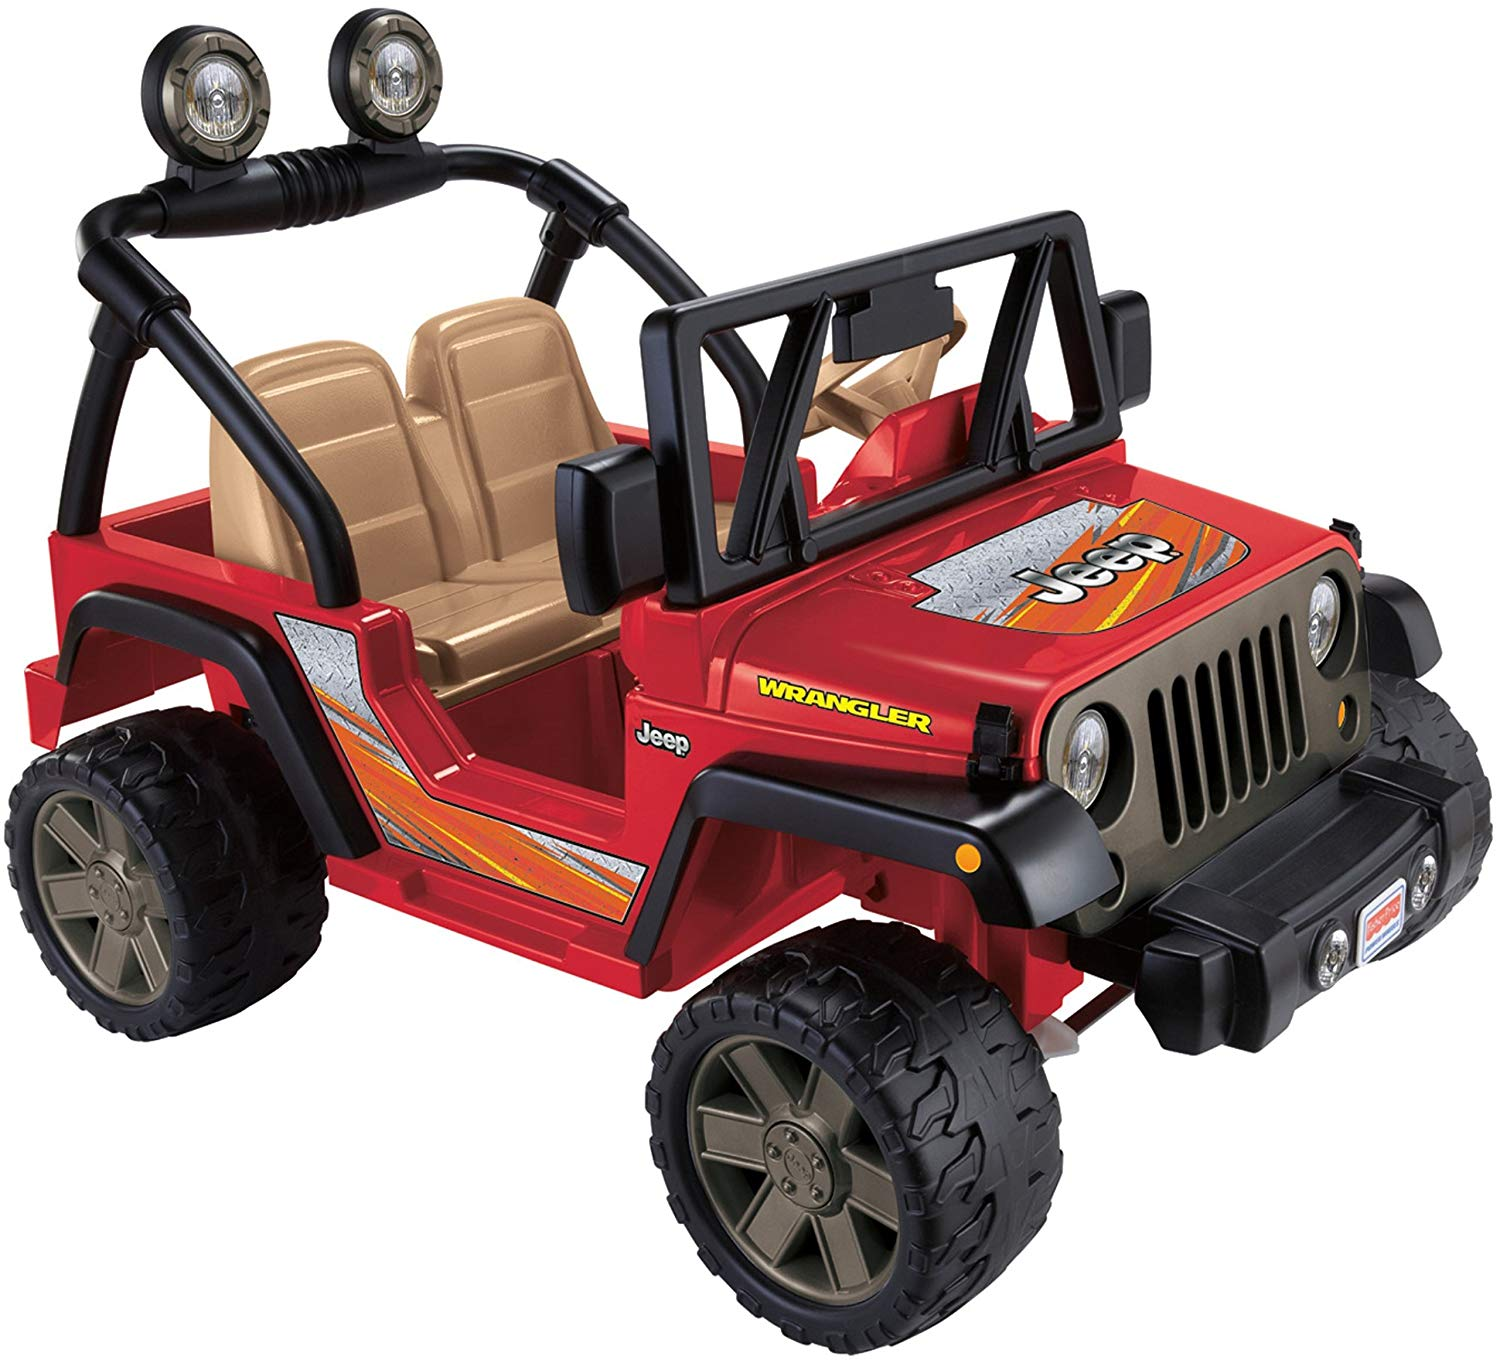 Motorized Ride On toys Inspirational Power Wheels Jeep Wrangler Red toys Games